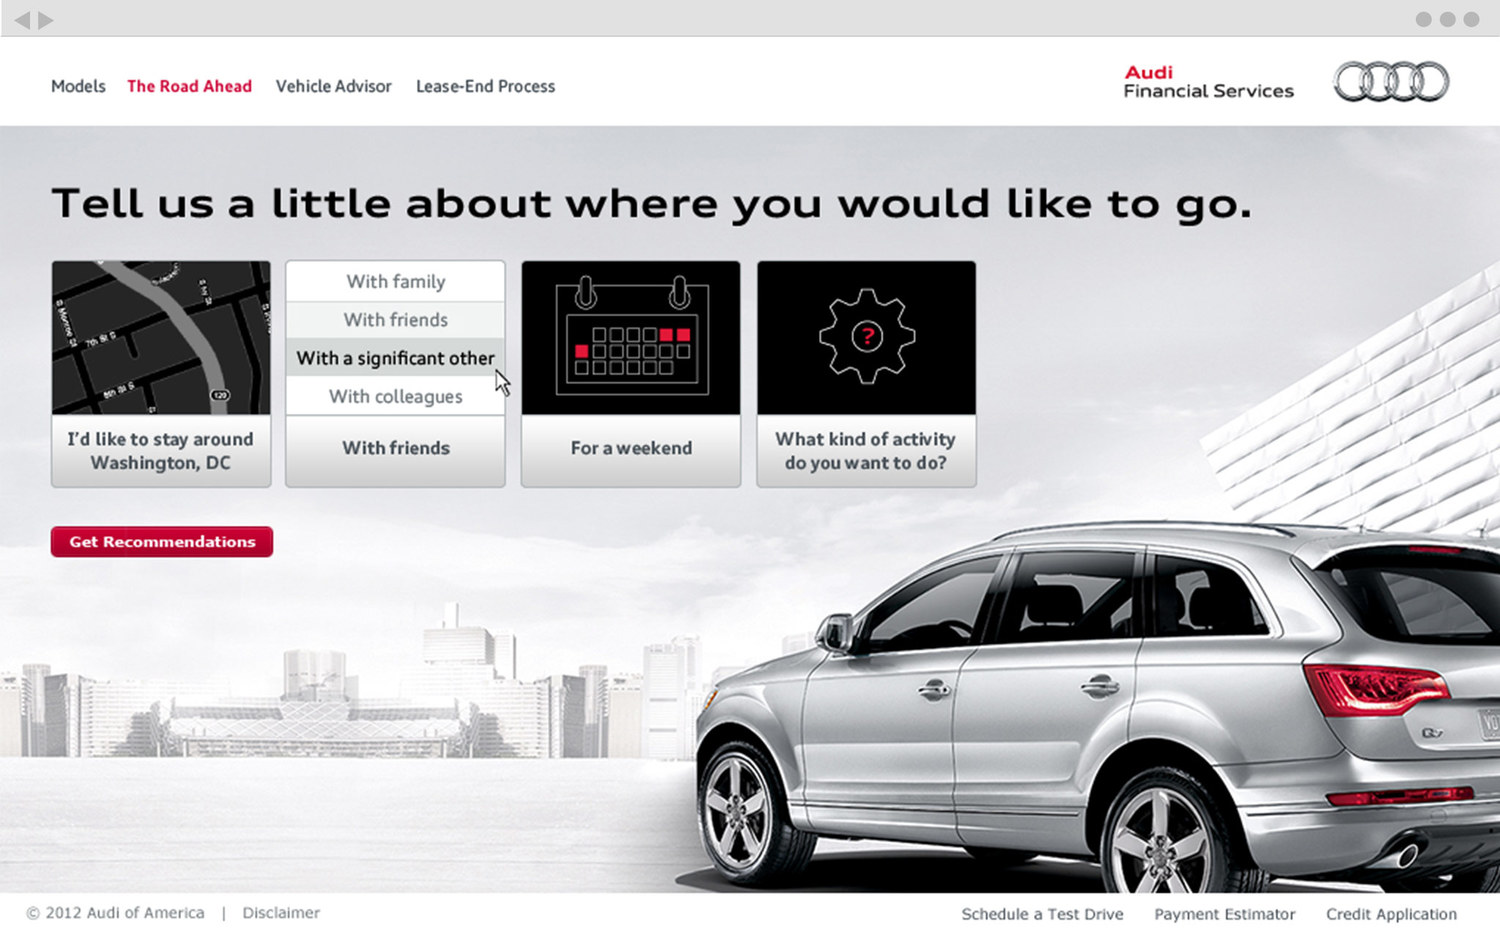 Audi Financial Services >> Audi Financial Services Br Digital Experience Br H6 H6